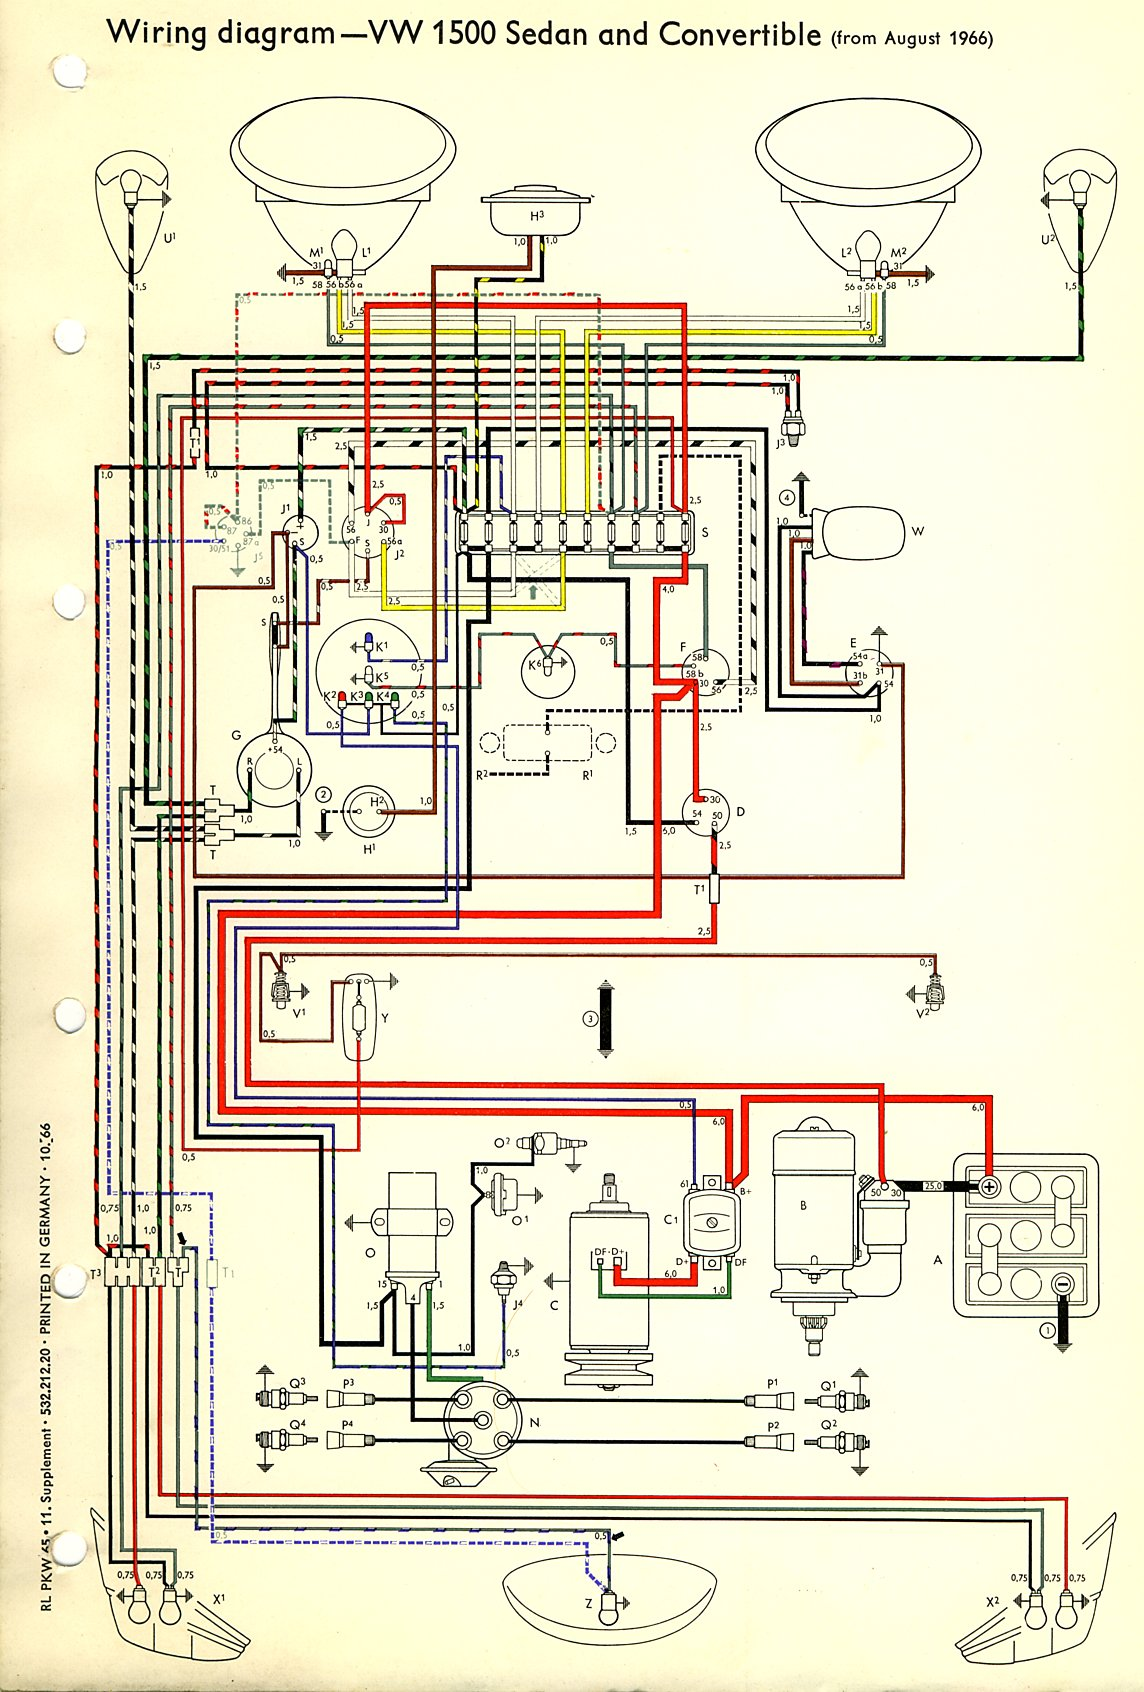 1967 Beetle Wiring Diagram Thegoldenbug Com VW Polo Fuse Box Location Vw  Beetle Fuse Diagram